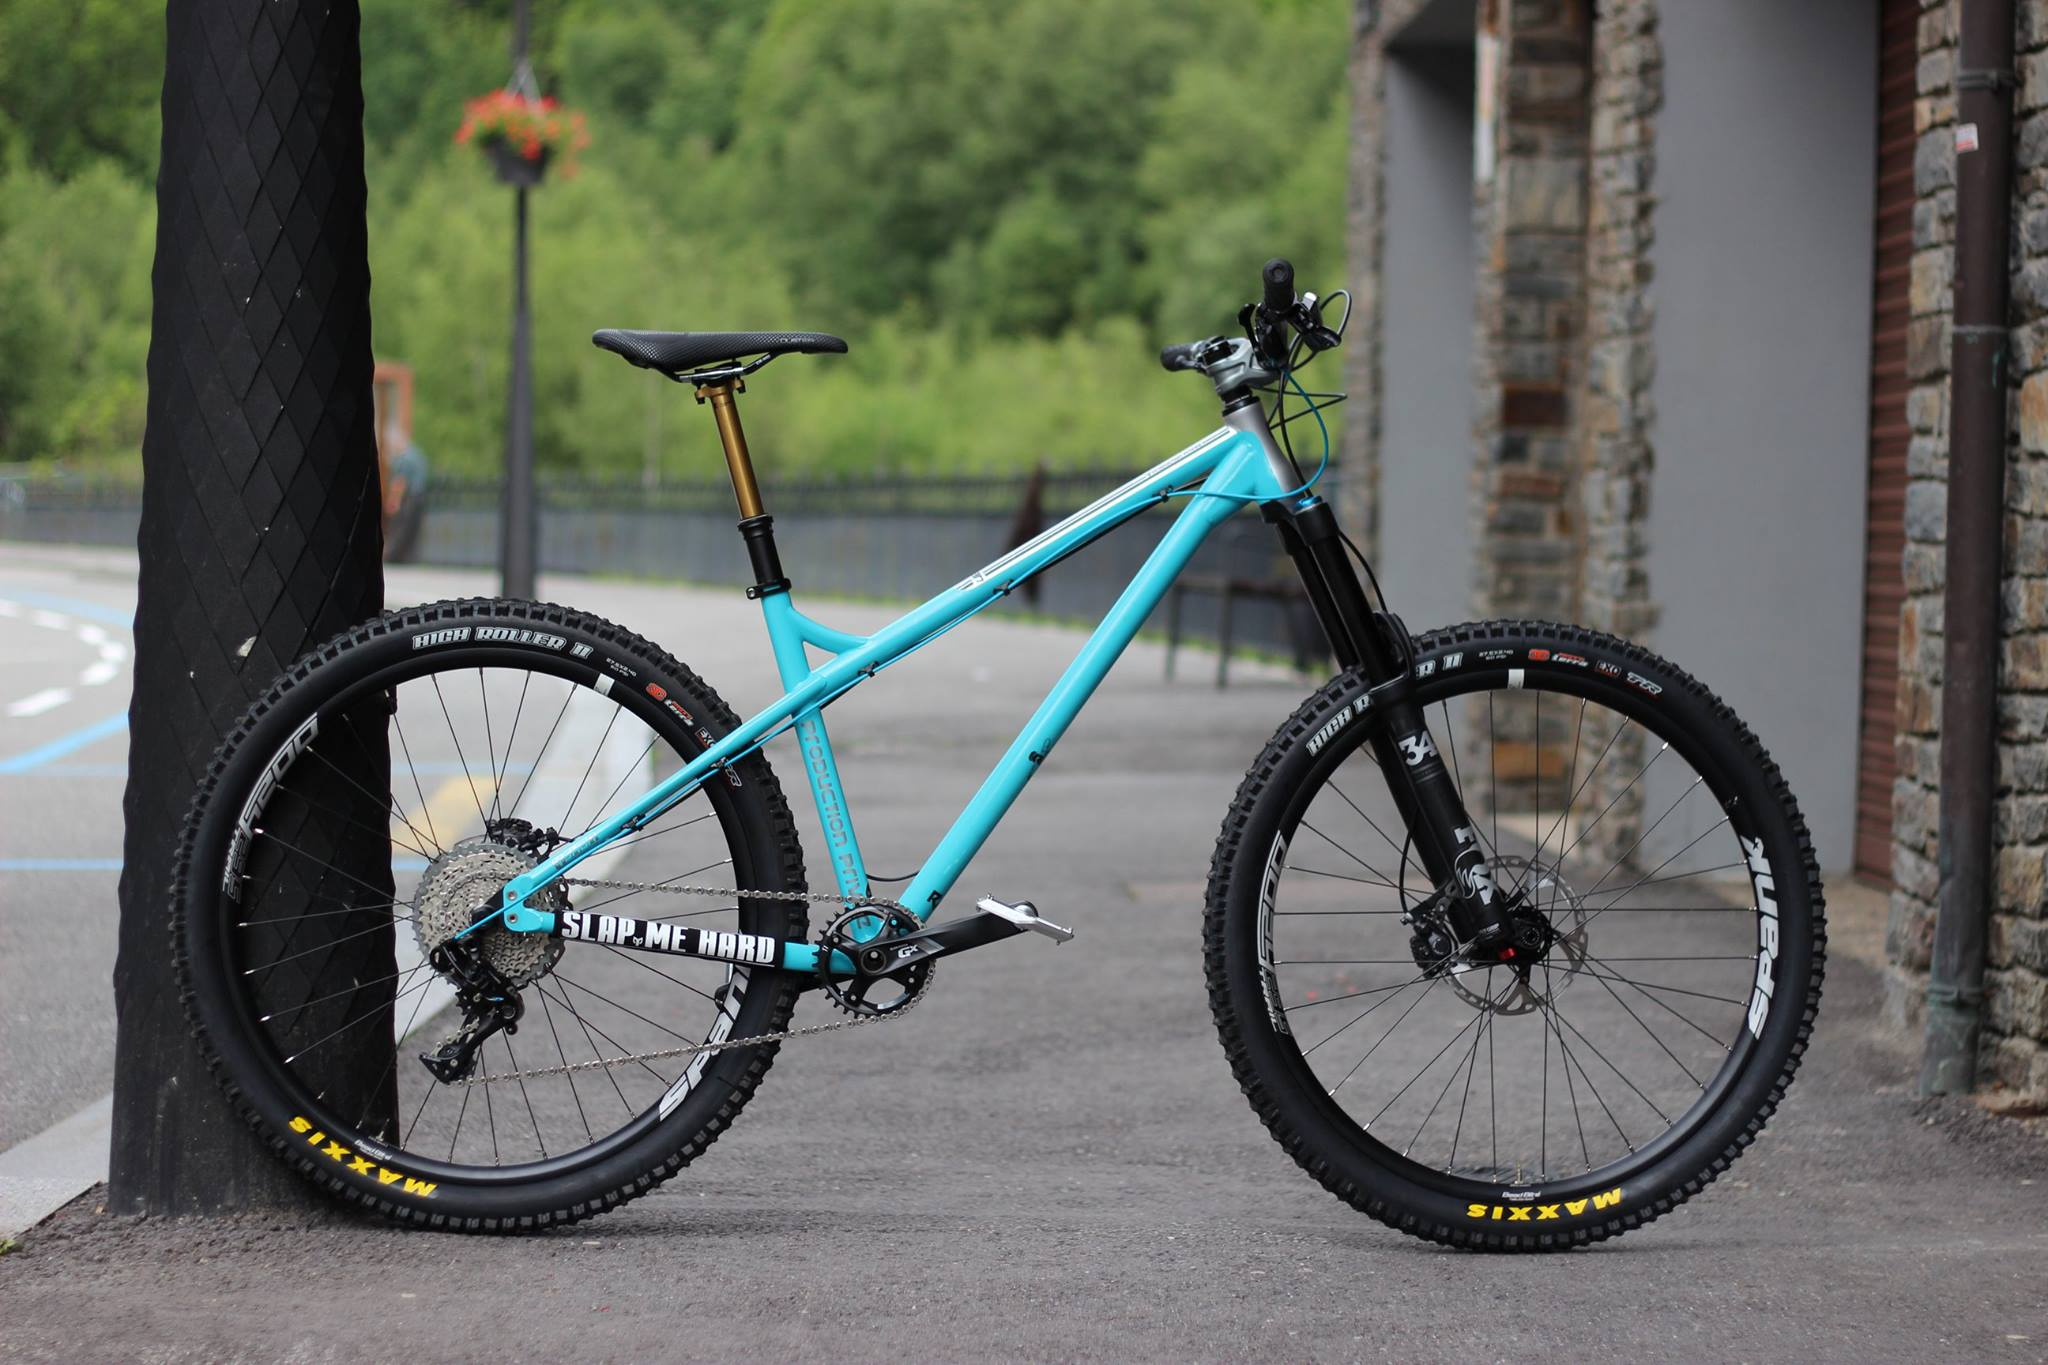 New 2017 Production Privee Shan 27 steel hardtail